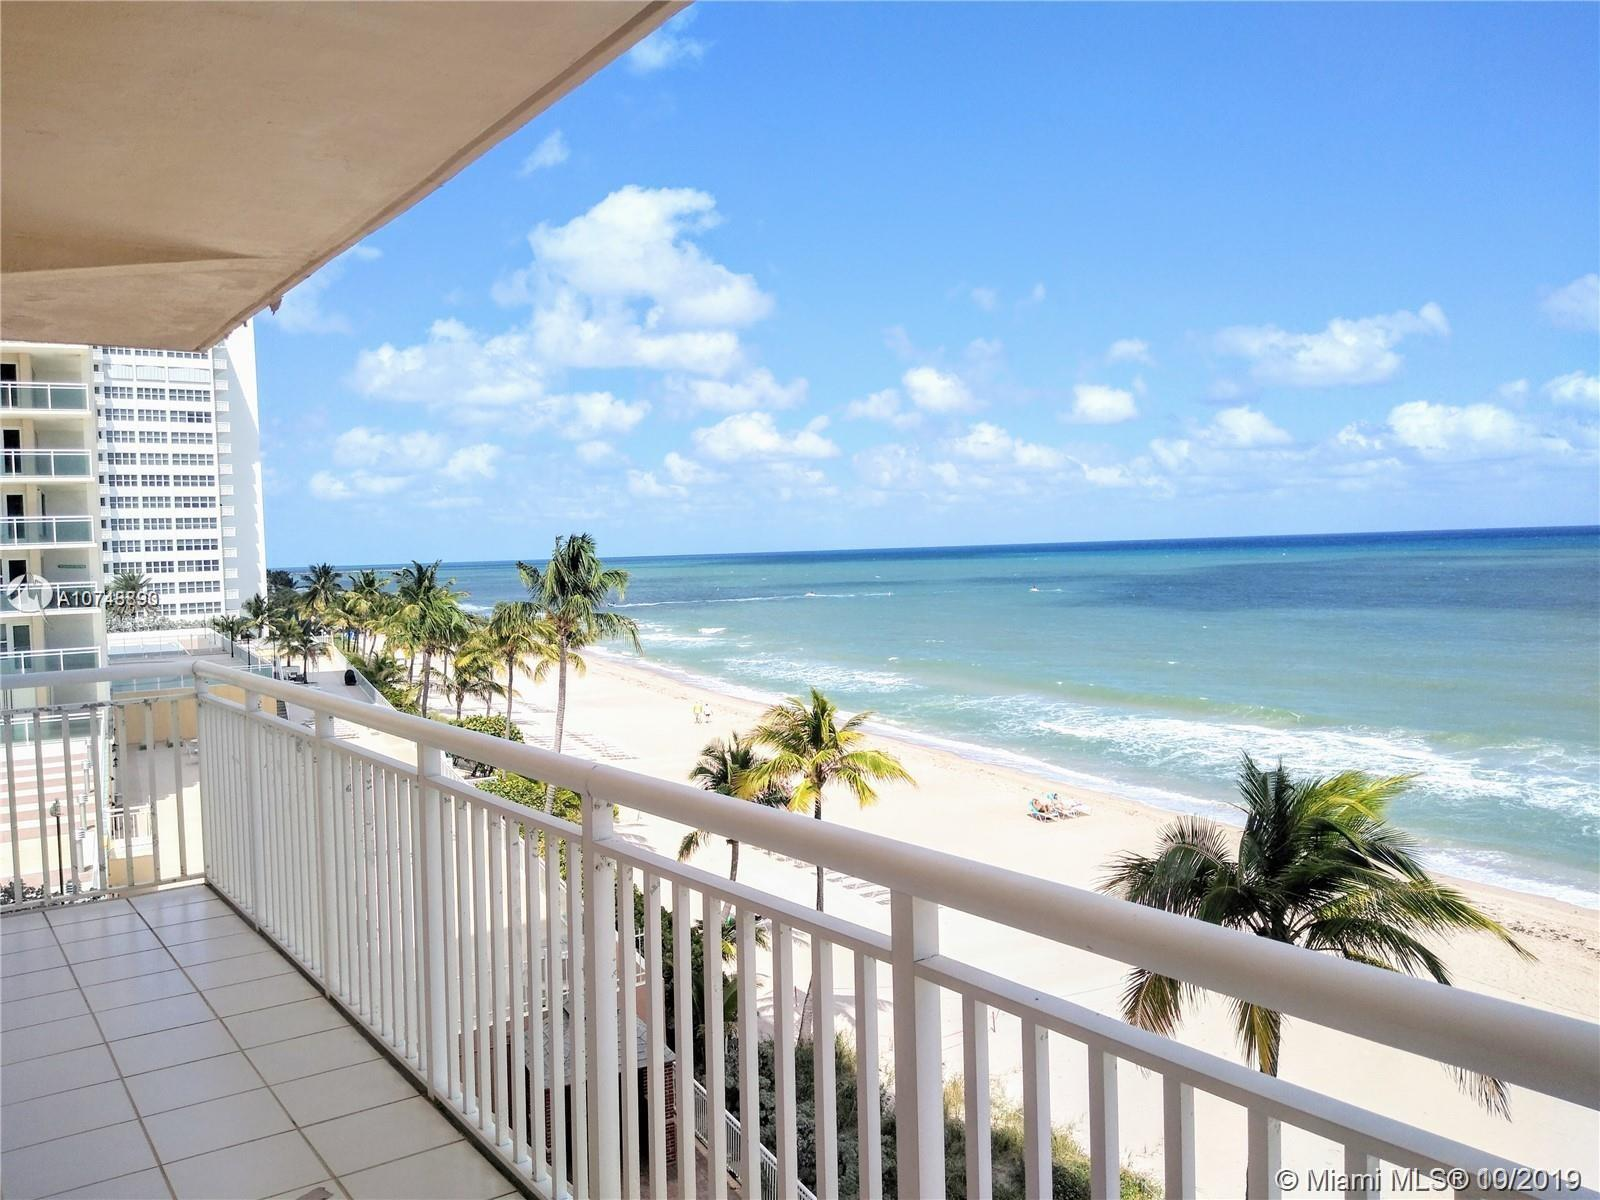 Spectacular Oceanfront Condo in the prestigious Galt Mile in Fort Lauderdale. With breathtaking ocean views, it features wrap-around balcony to enjoy the beautiful sunrise every morning, impact windows, bright kitchen with granite countertops, spacious living and dining area, lots of storage, laundry inside the unit, huge master bedroom with seating area, walking closet and big master bath with spa tub. 2 more bedrooms one of them with walking closet. Second full bathroom with spa shower and granite vanity. Oceanview from all the windows. 2 covered parking spaces. The building offers many amenities including the recently renovated lobby and elevators, exercise room, clubroom, heated pool, private beach access, BBQ area. Conveniently located close to shopping and restaurants. MUST SEE IT!